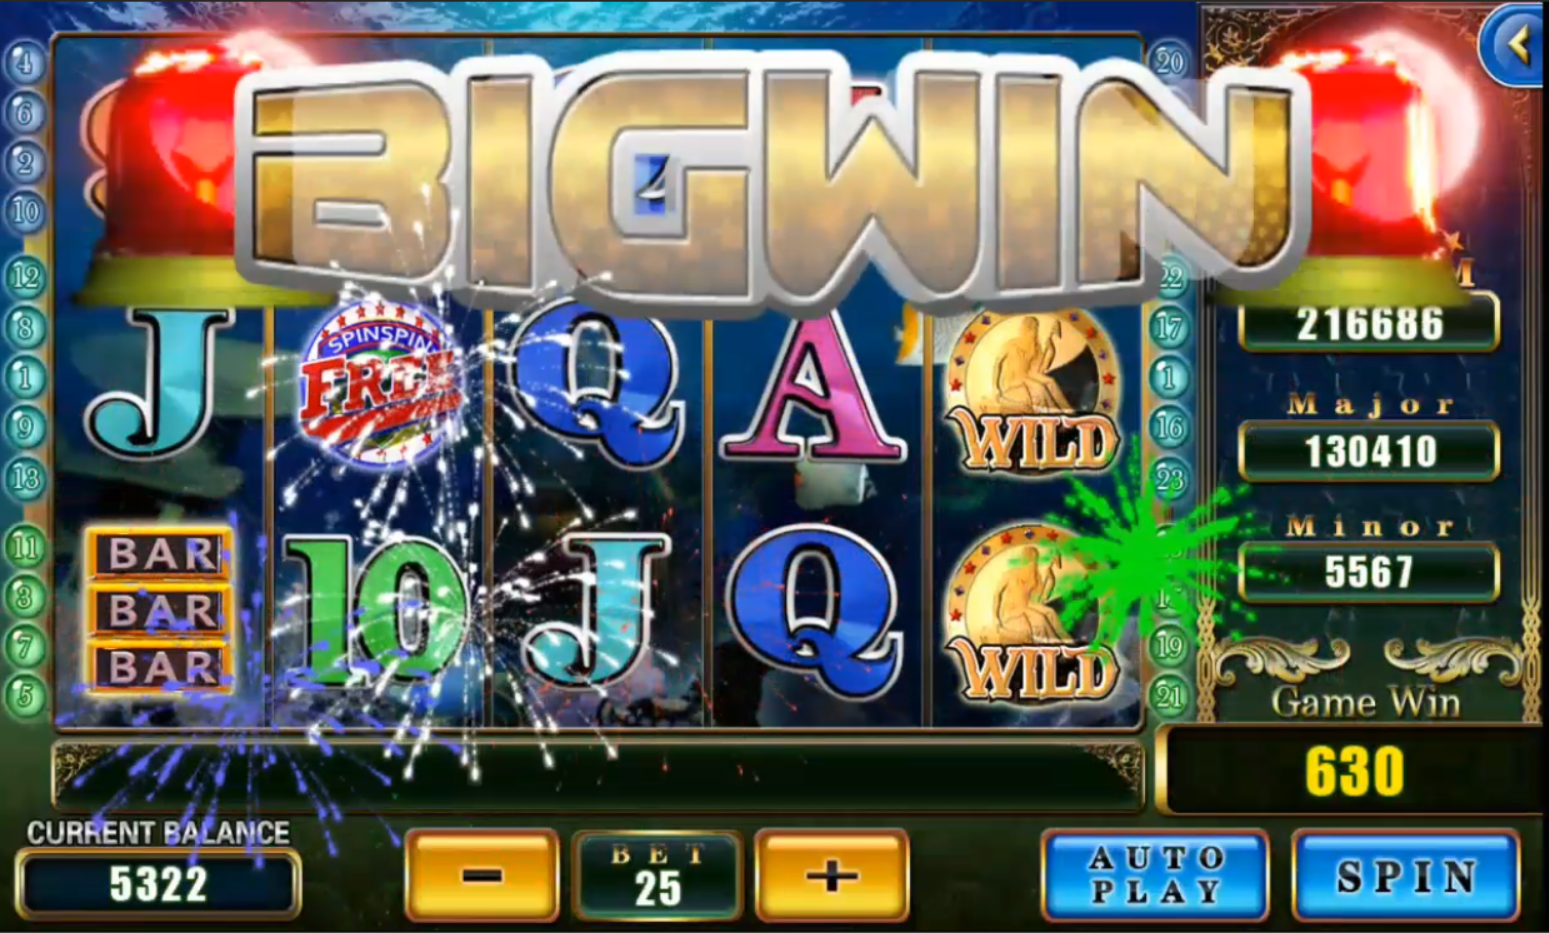 Big Win Slot Game